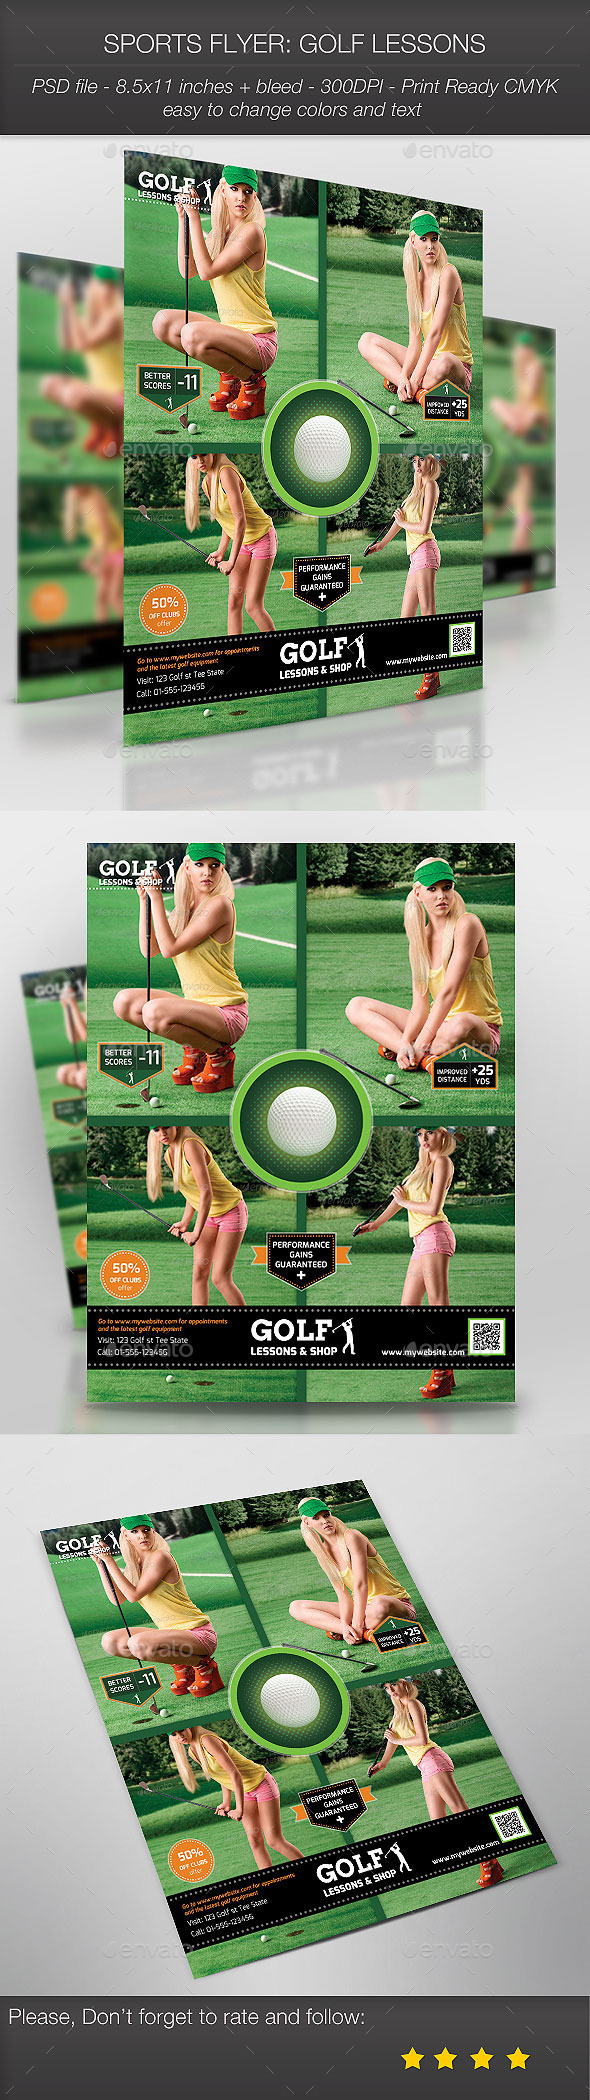 Sports Flyer: Golf Lessons - Sports Events